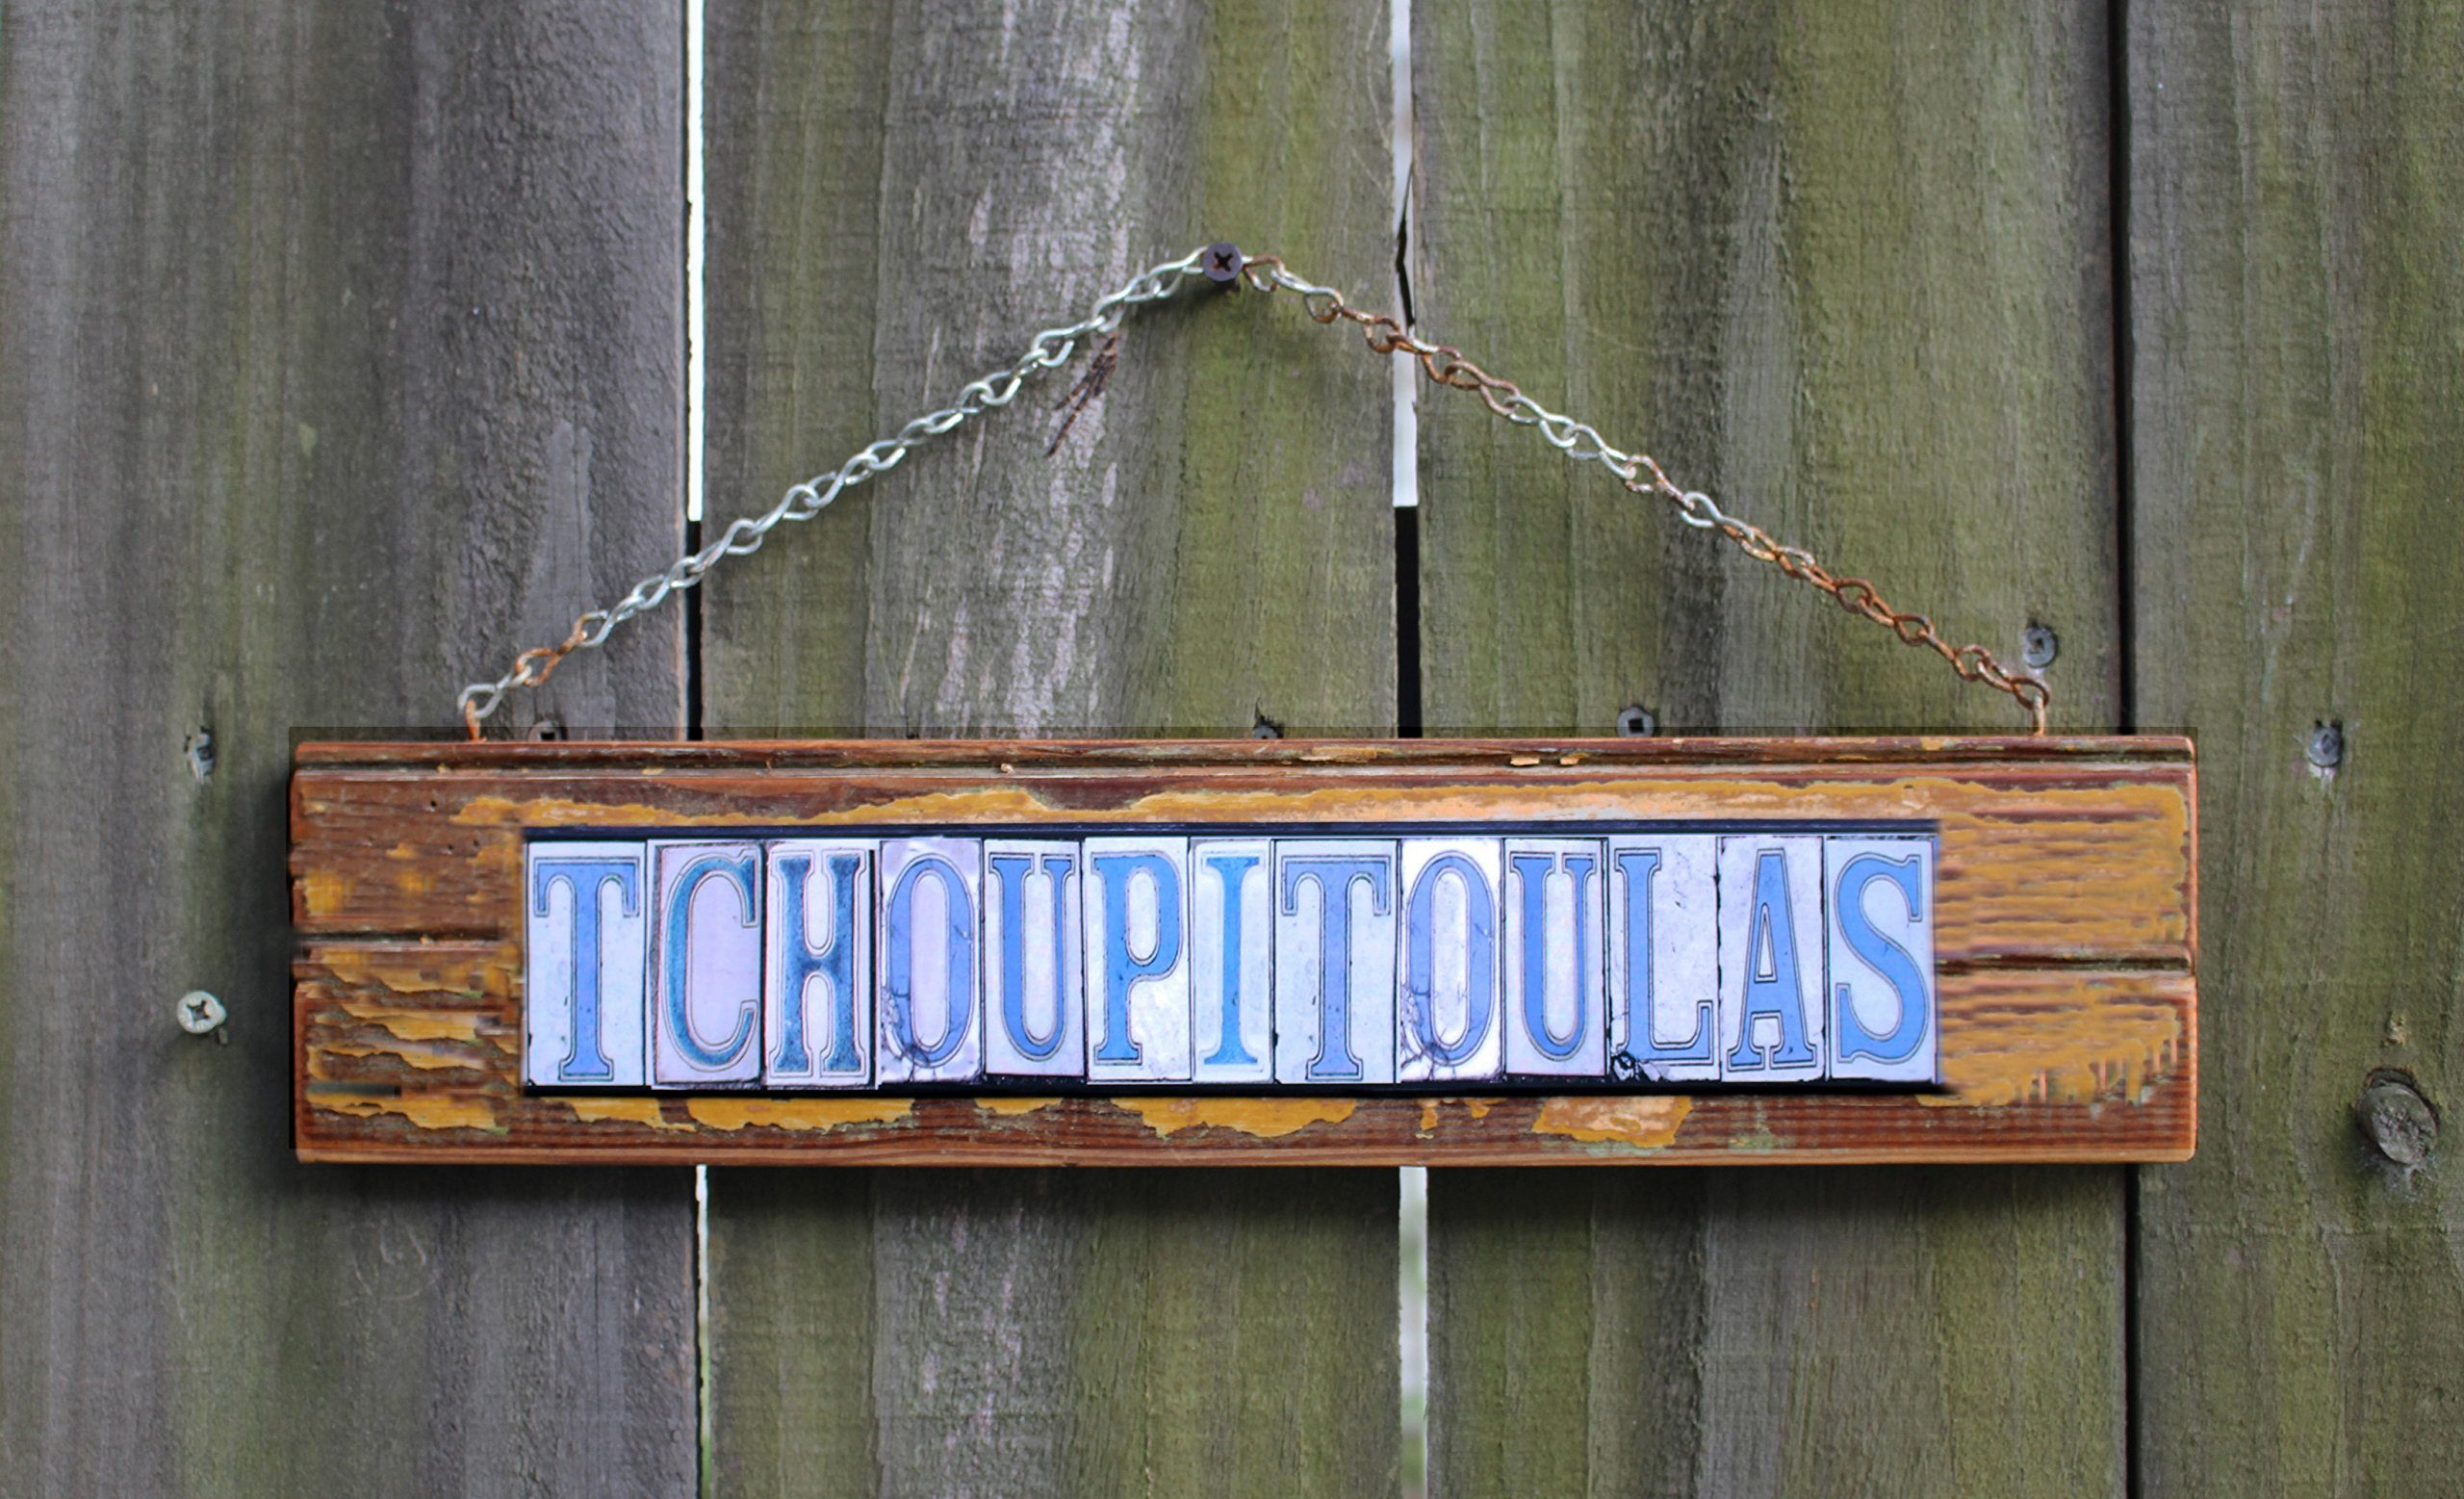 New Orleans Tchoupitoulas Street Tile lettering sign, salvage wood, mixed media. Street tile photographic images styled after original tile street signs.